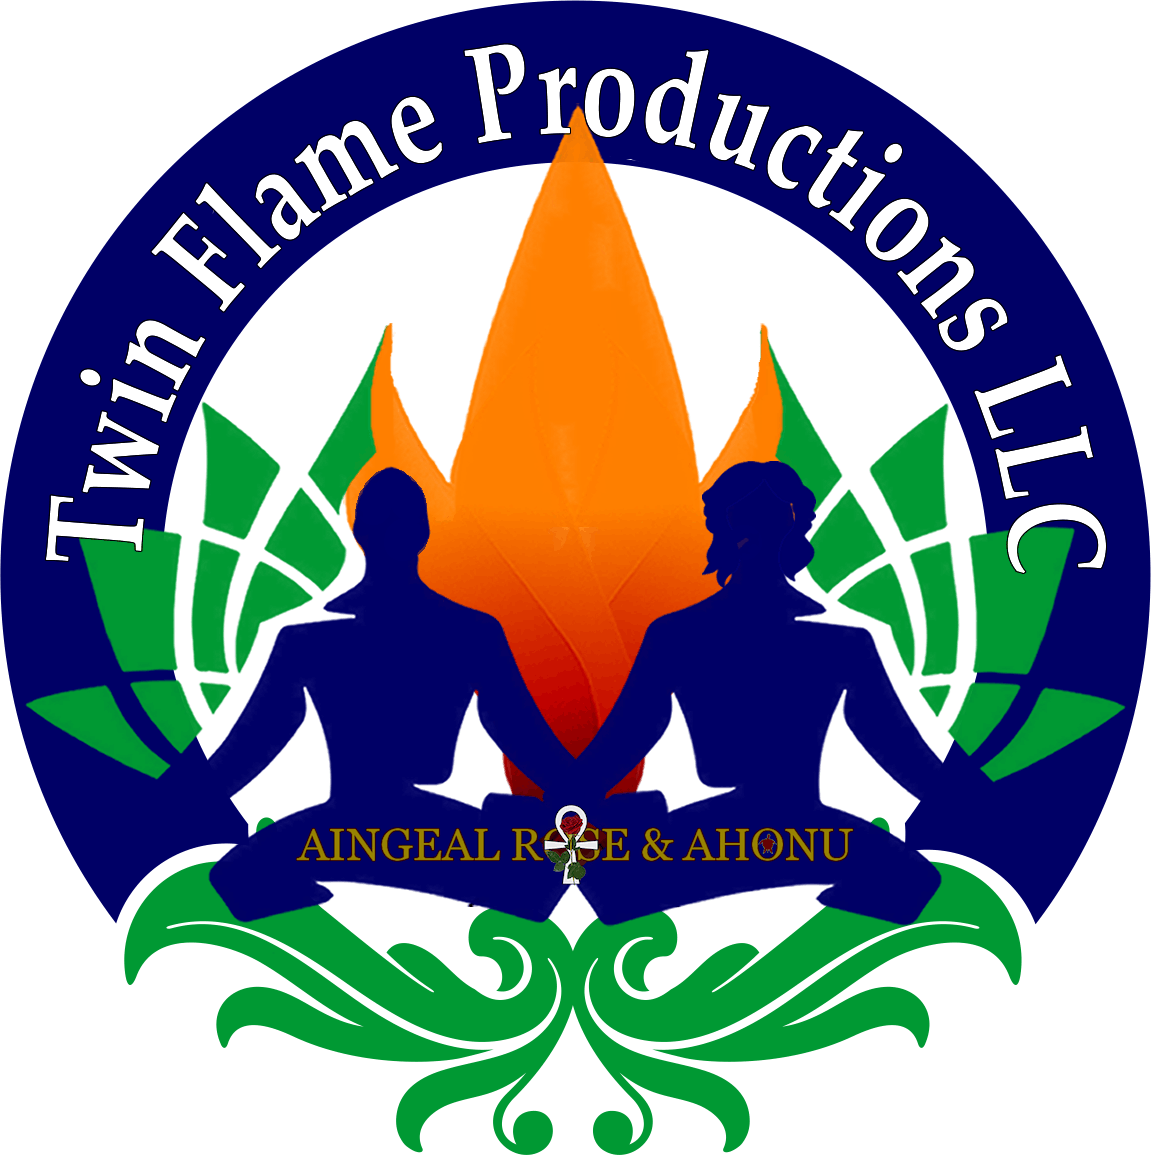 Twin Flame Productions